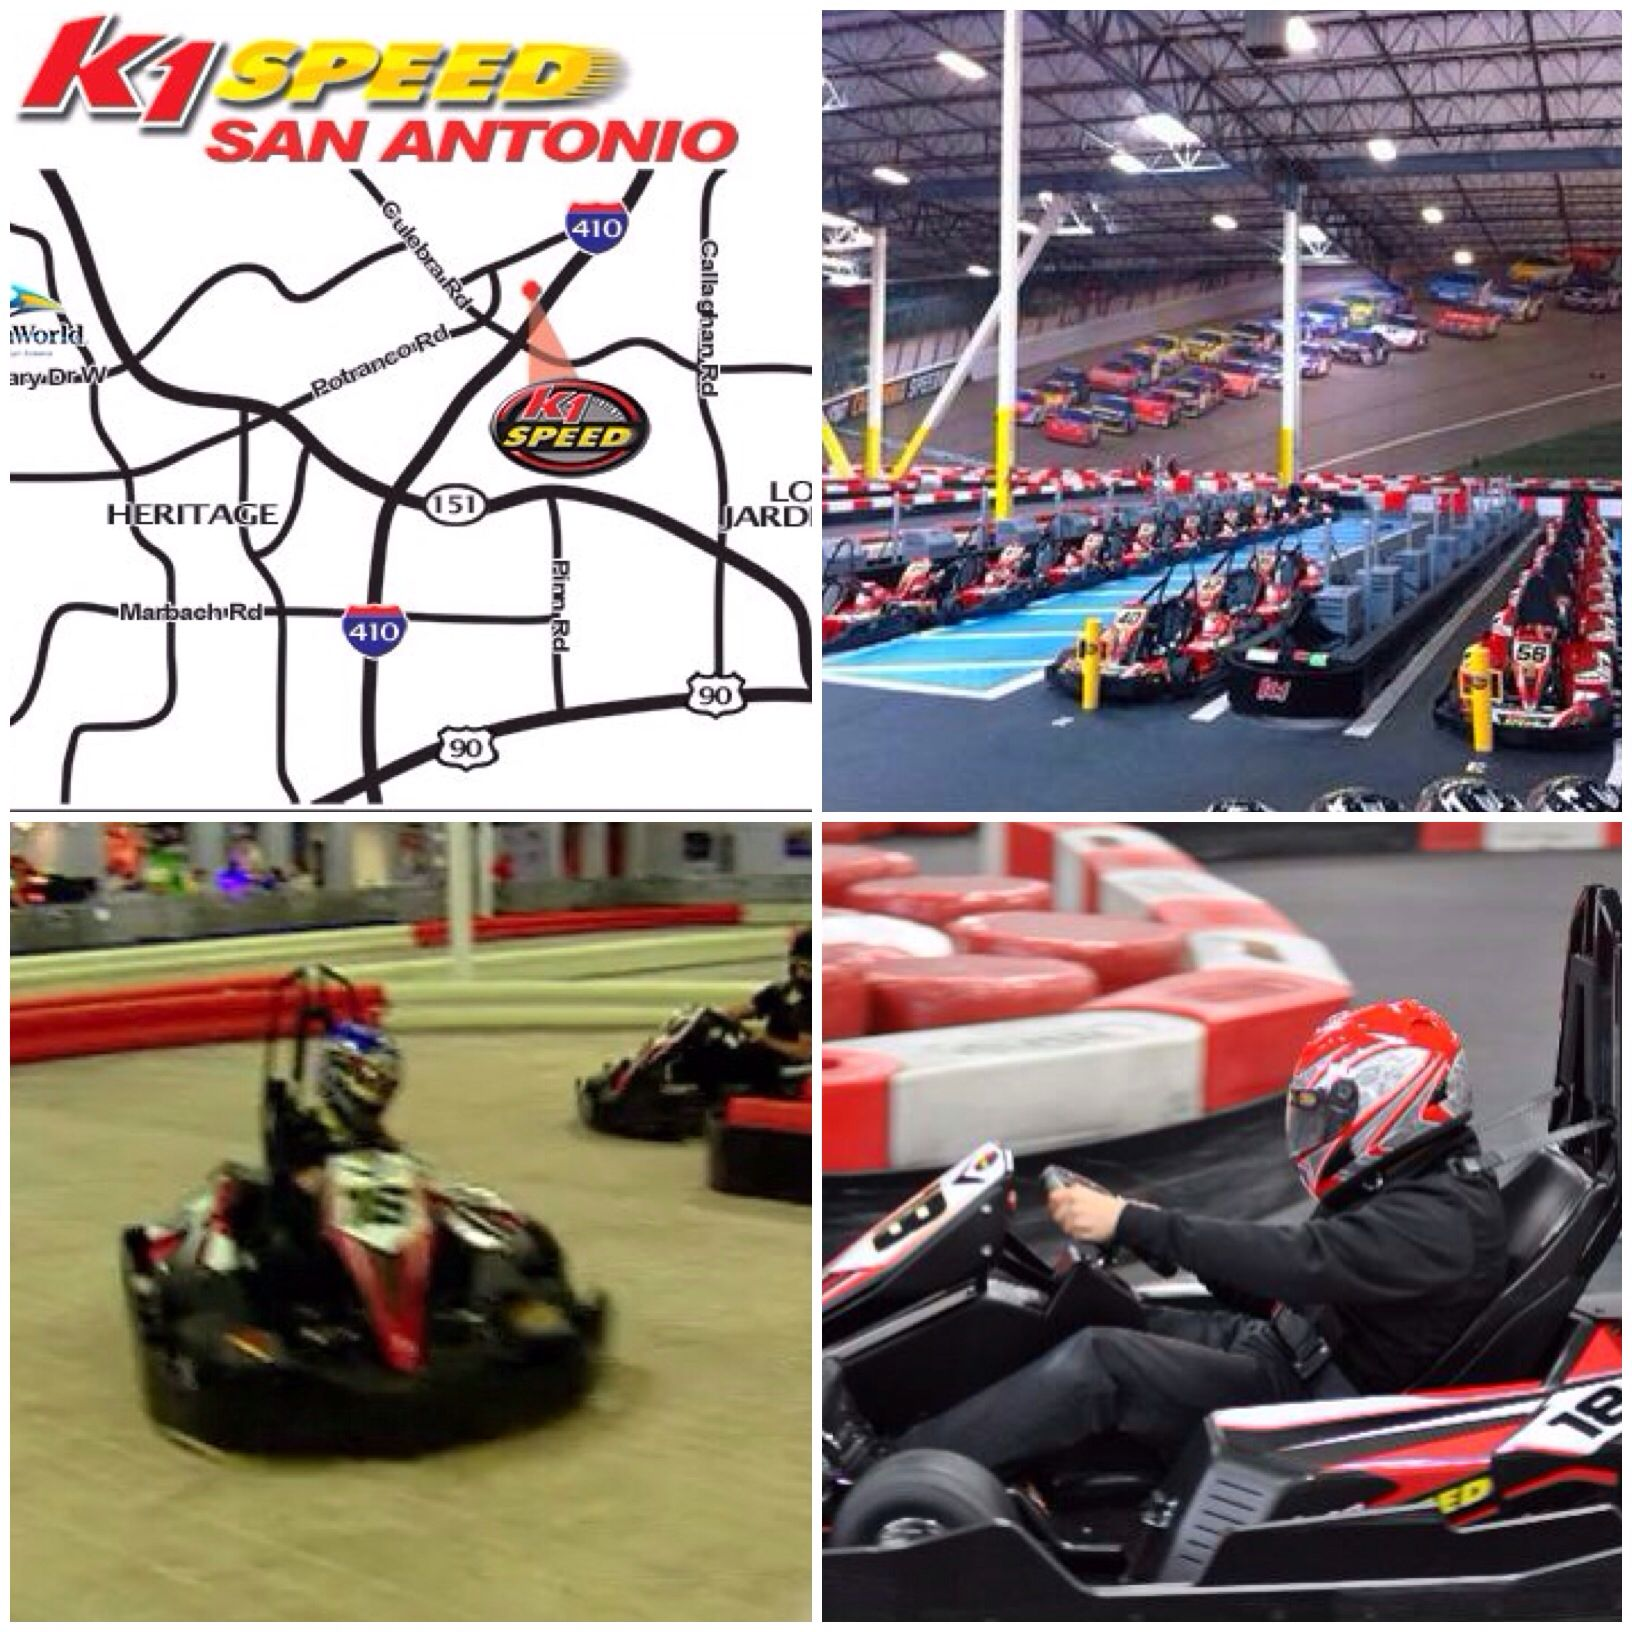 K1 Speed has introduced the sport of indoor go-kart racing to people throughout Texas. With our San Antonio karting center, we've now brought the sport to Southwest Texas as well. If you've never been to a K1 Speed center before, forget everything that you think you know about go-kart racing. At K1 Speed, we offer a truly unique – and thrilling – experience. Gone are the anemic, heavy, unreliable, gas-spewing karts of your youth. In their place are state-of-the-art, high-performance…